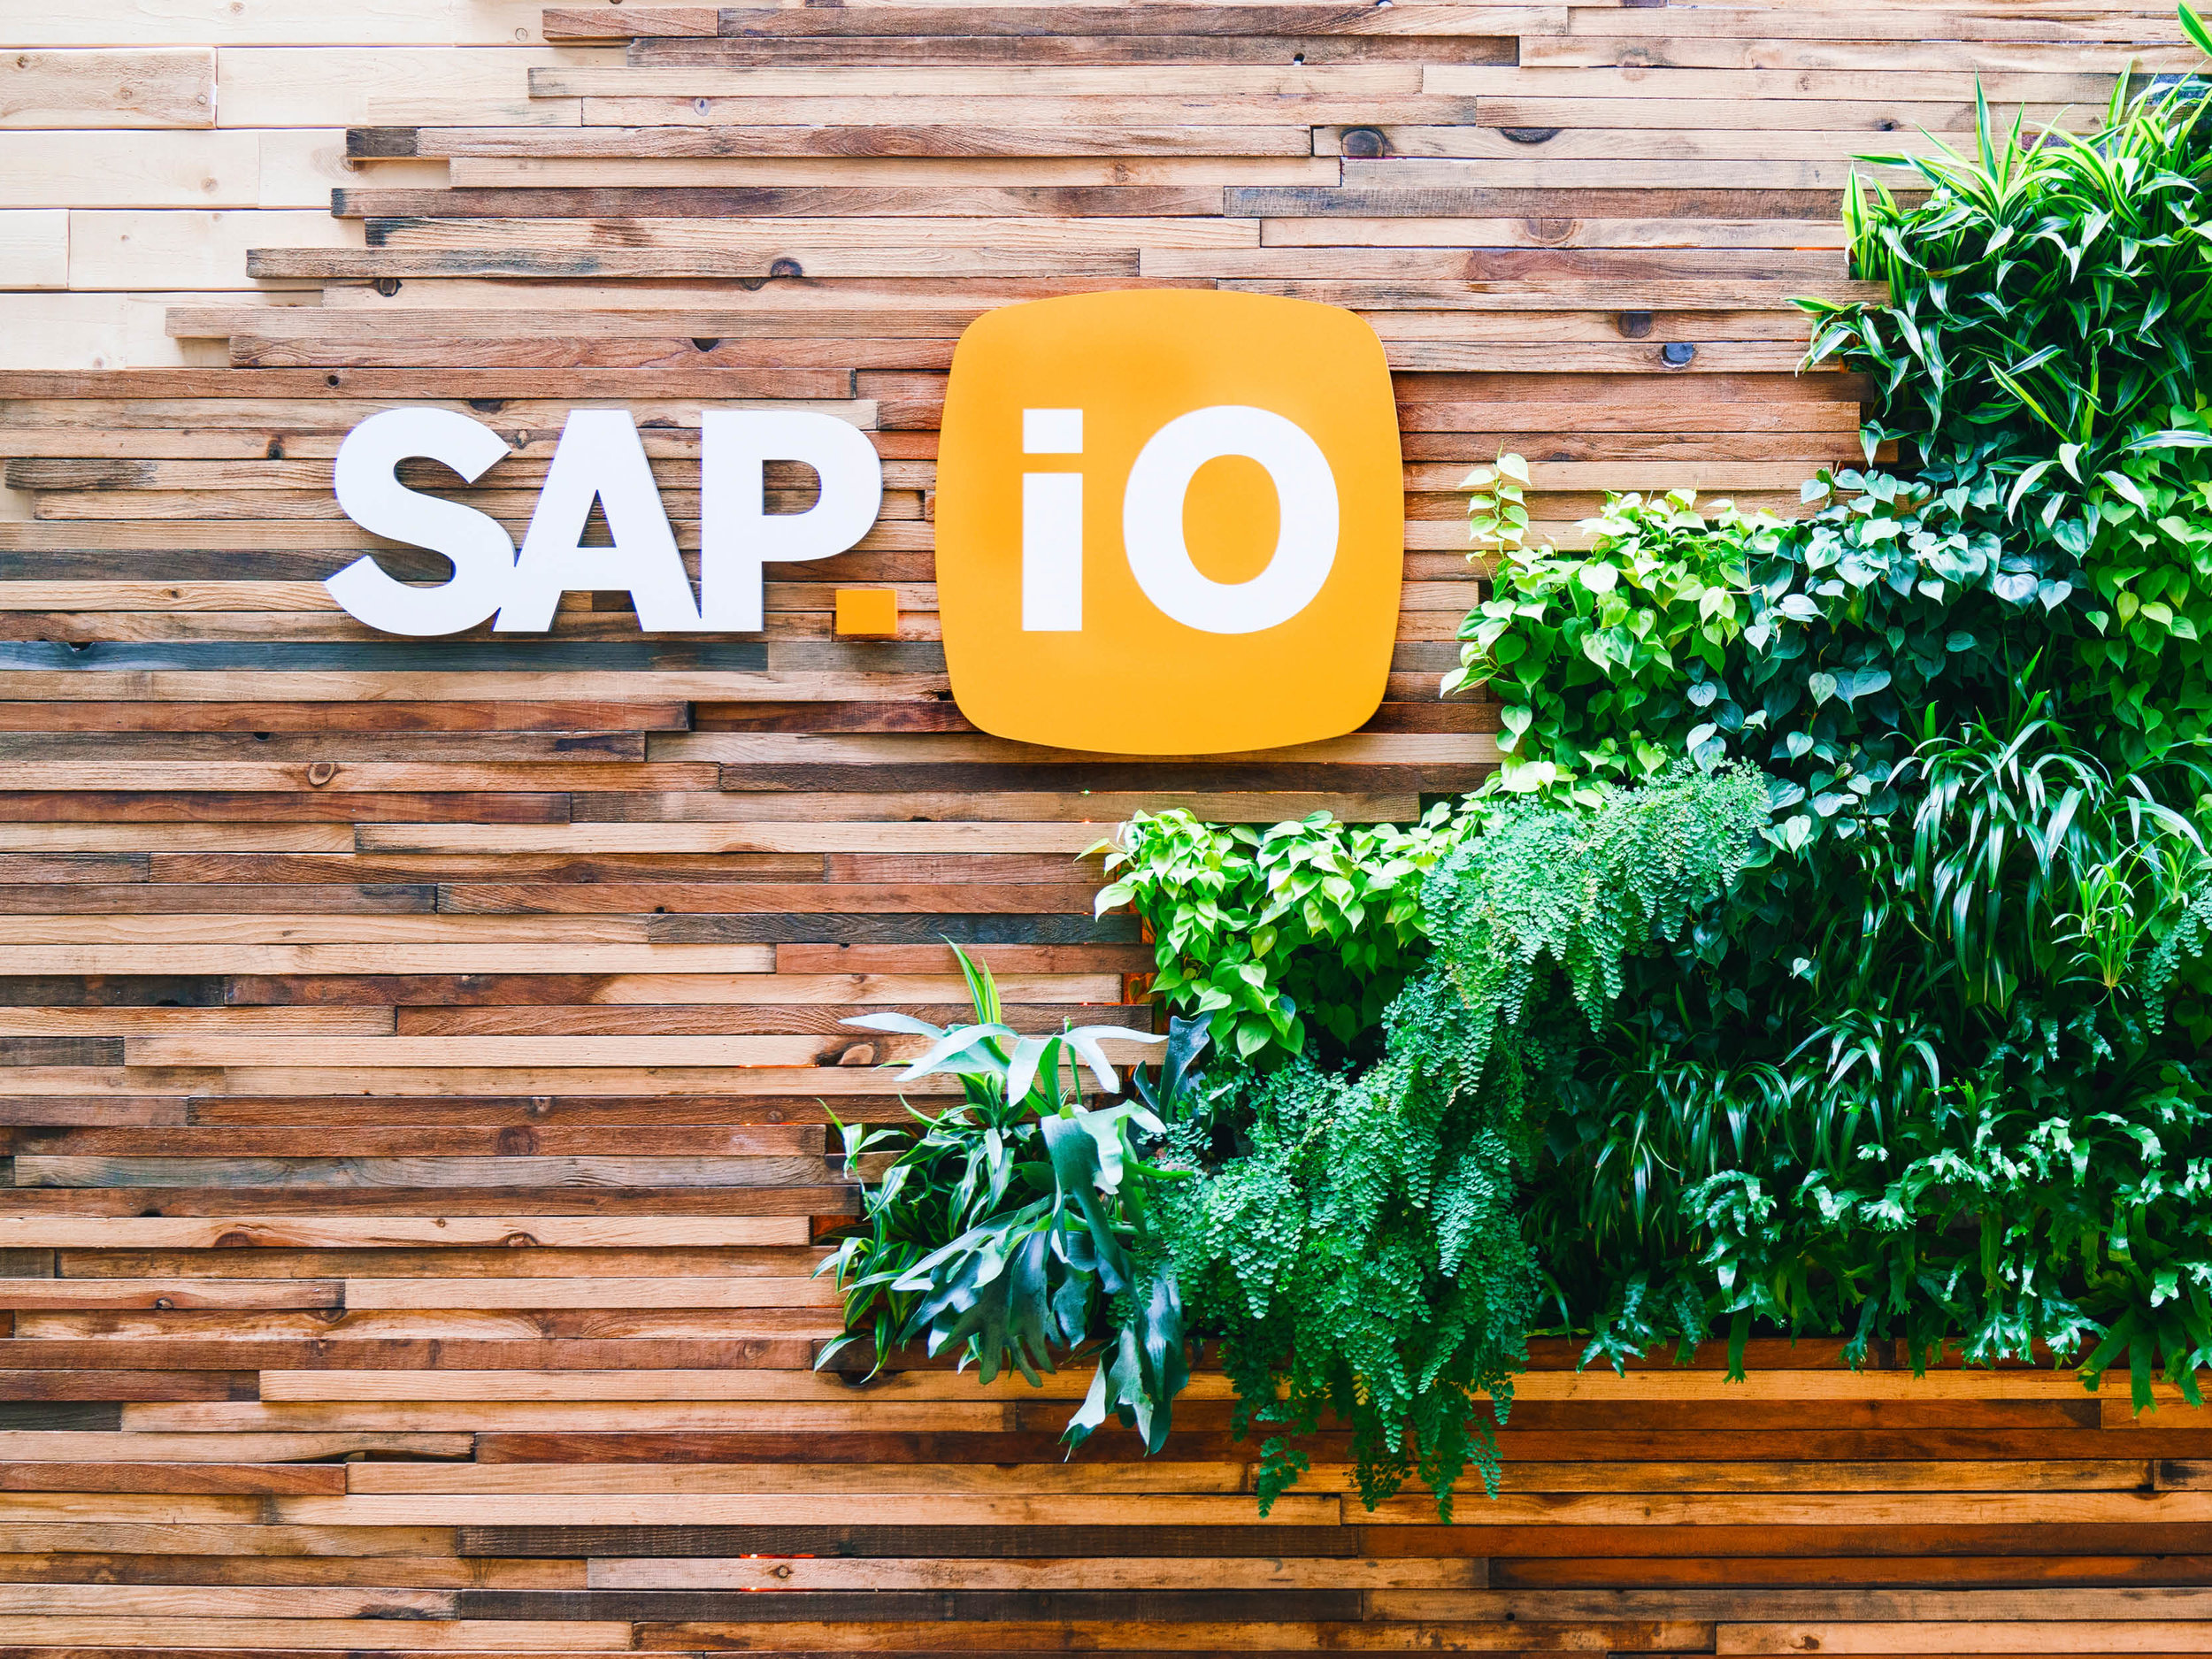 SAP.iO-PPT-Header-Images-Feb-2019-v142.jpg